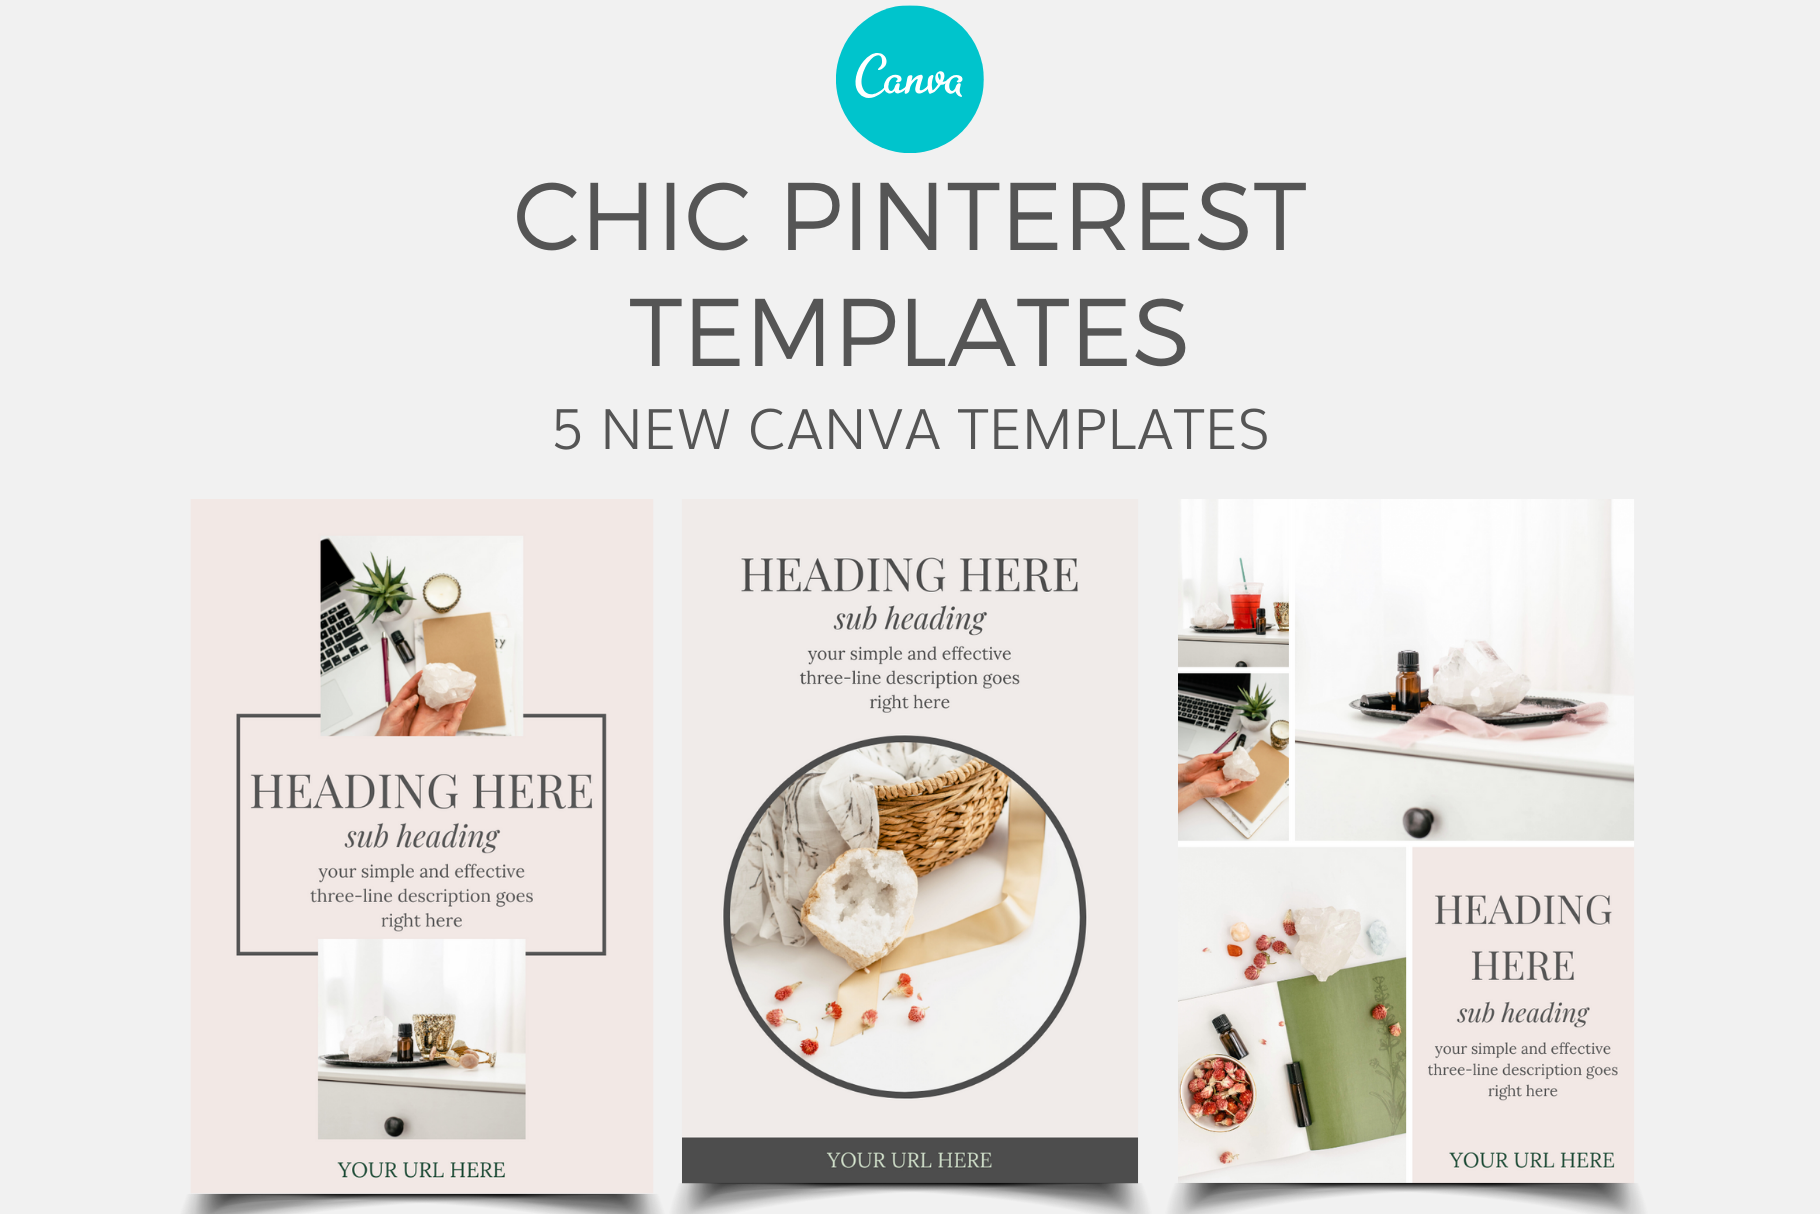 chic pinterest canva templates